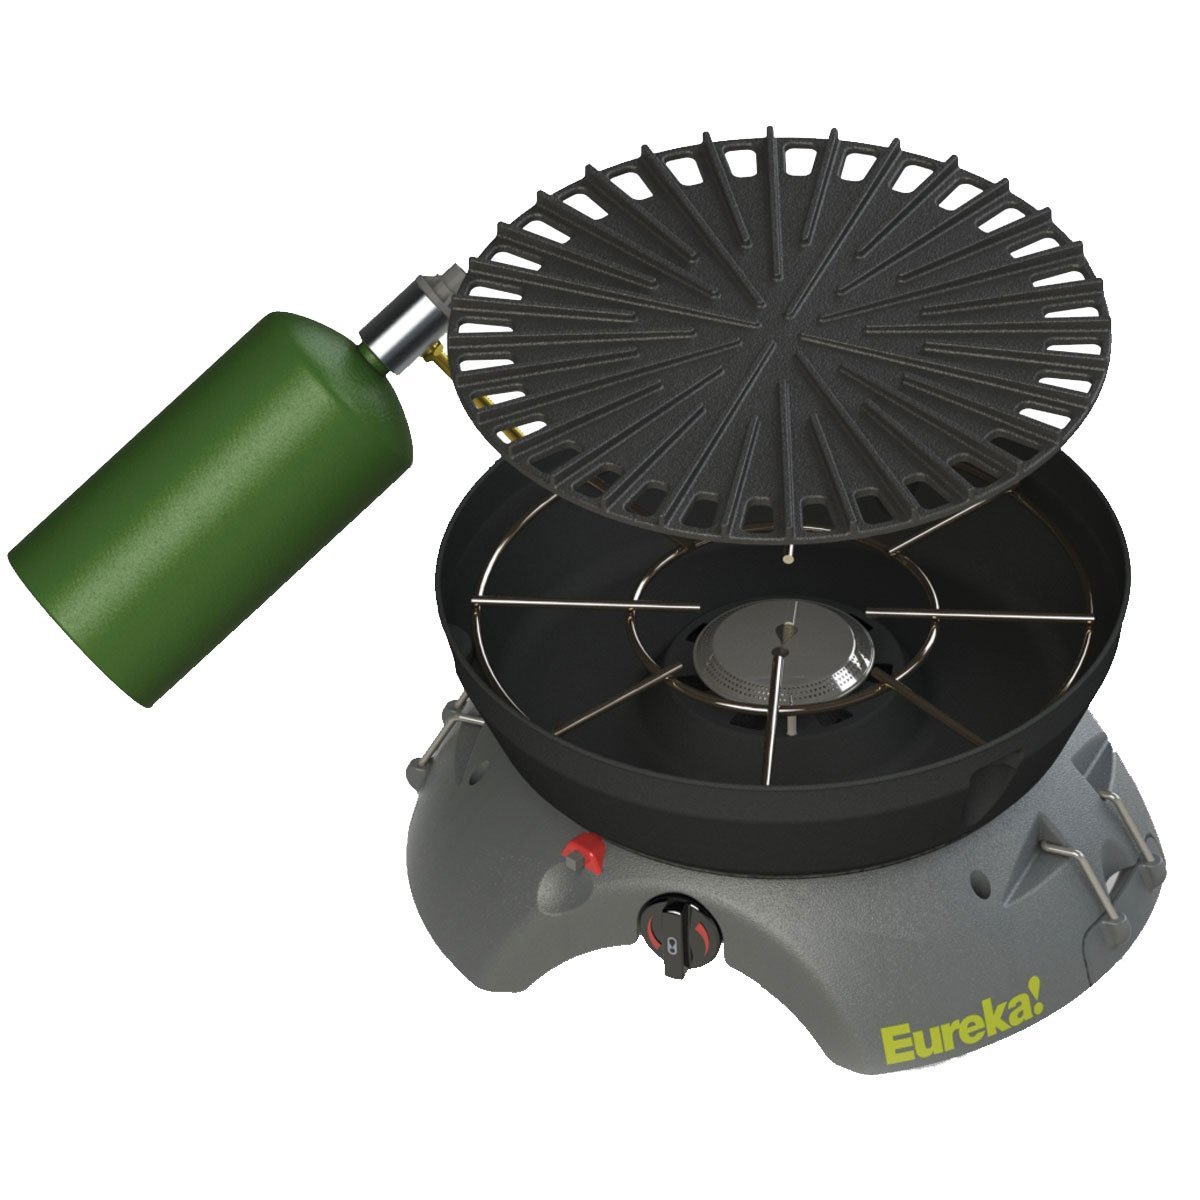 Eureka! Gonzo Grill Camping Cook System